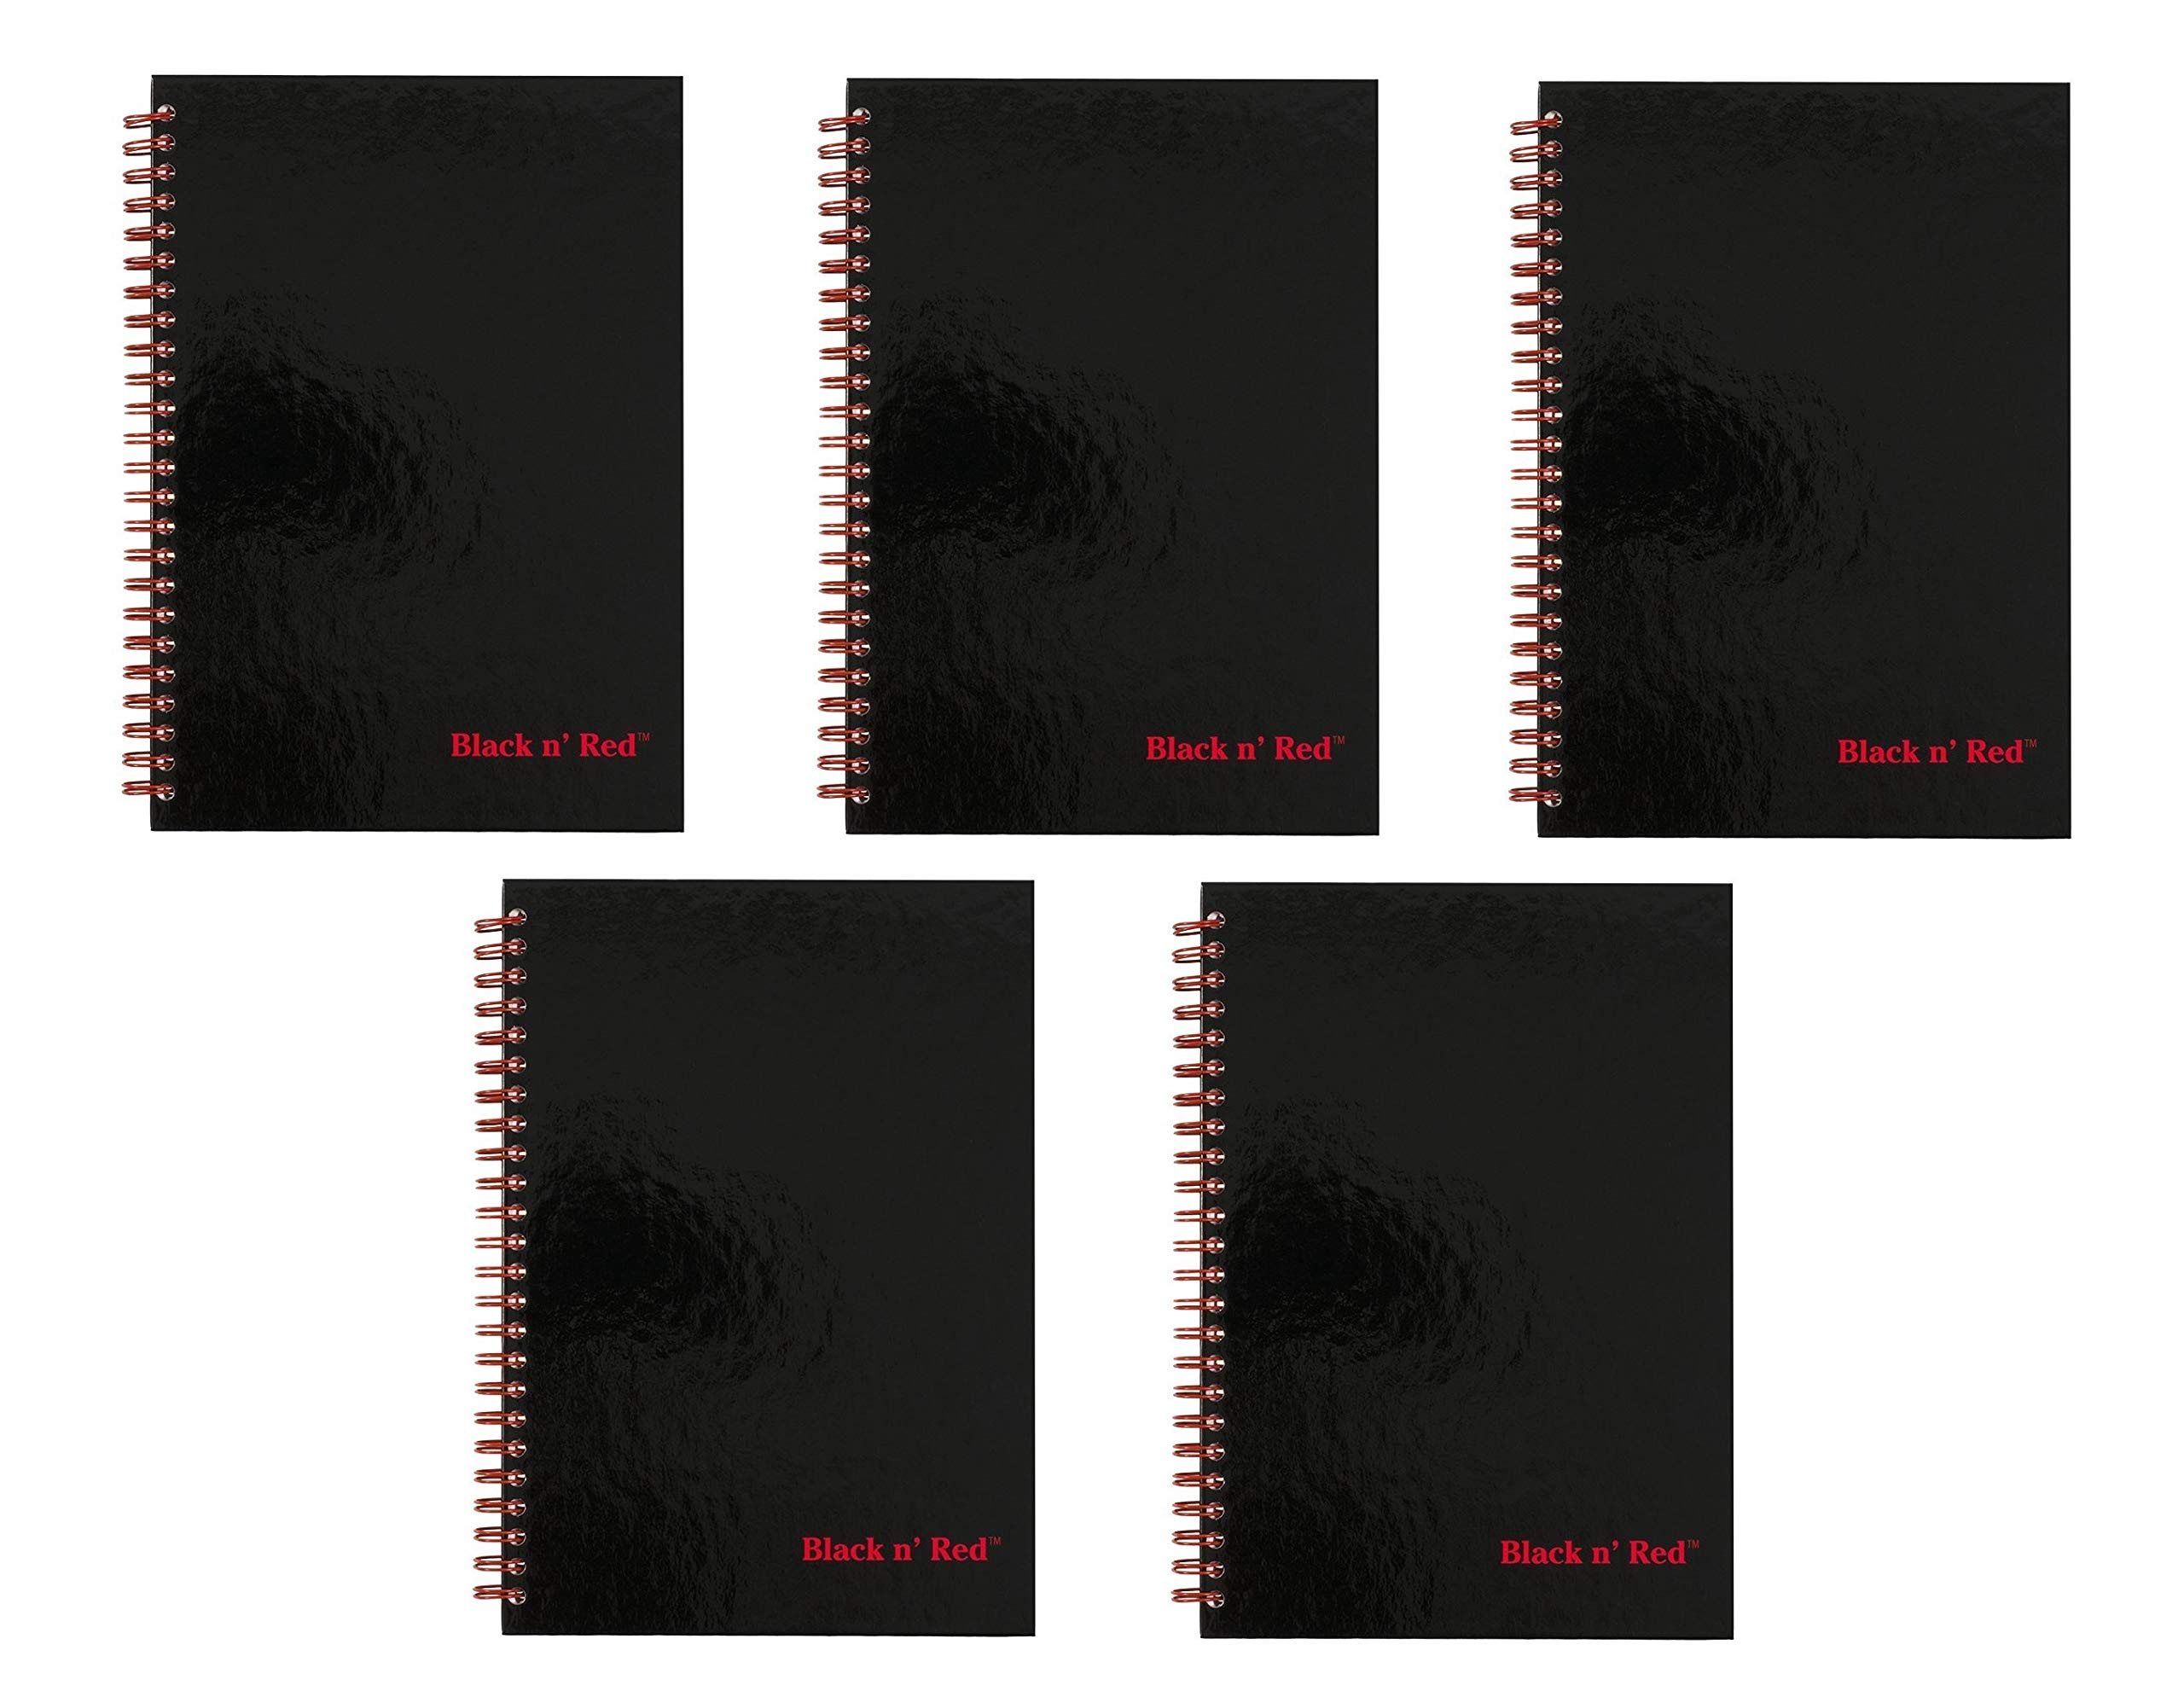 Black n' Red Twin Wire Hardcover Notebook, 8-1/4'' x 5-7/8'', Black/Red, 70 Ruled Sheets, Sold as 5 Pack (L67000) by Black n' Red